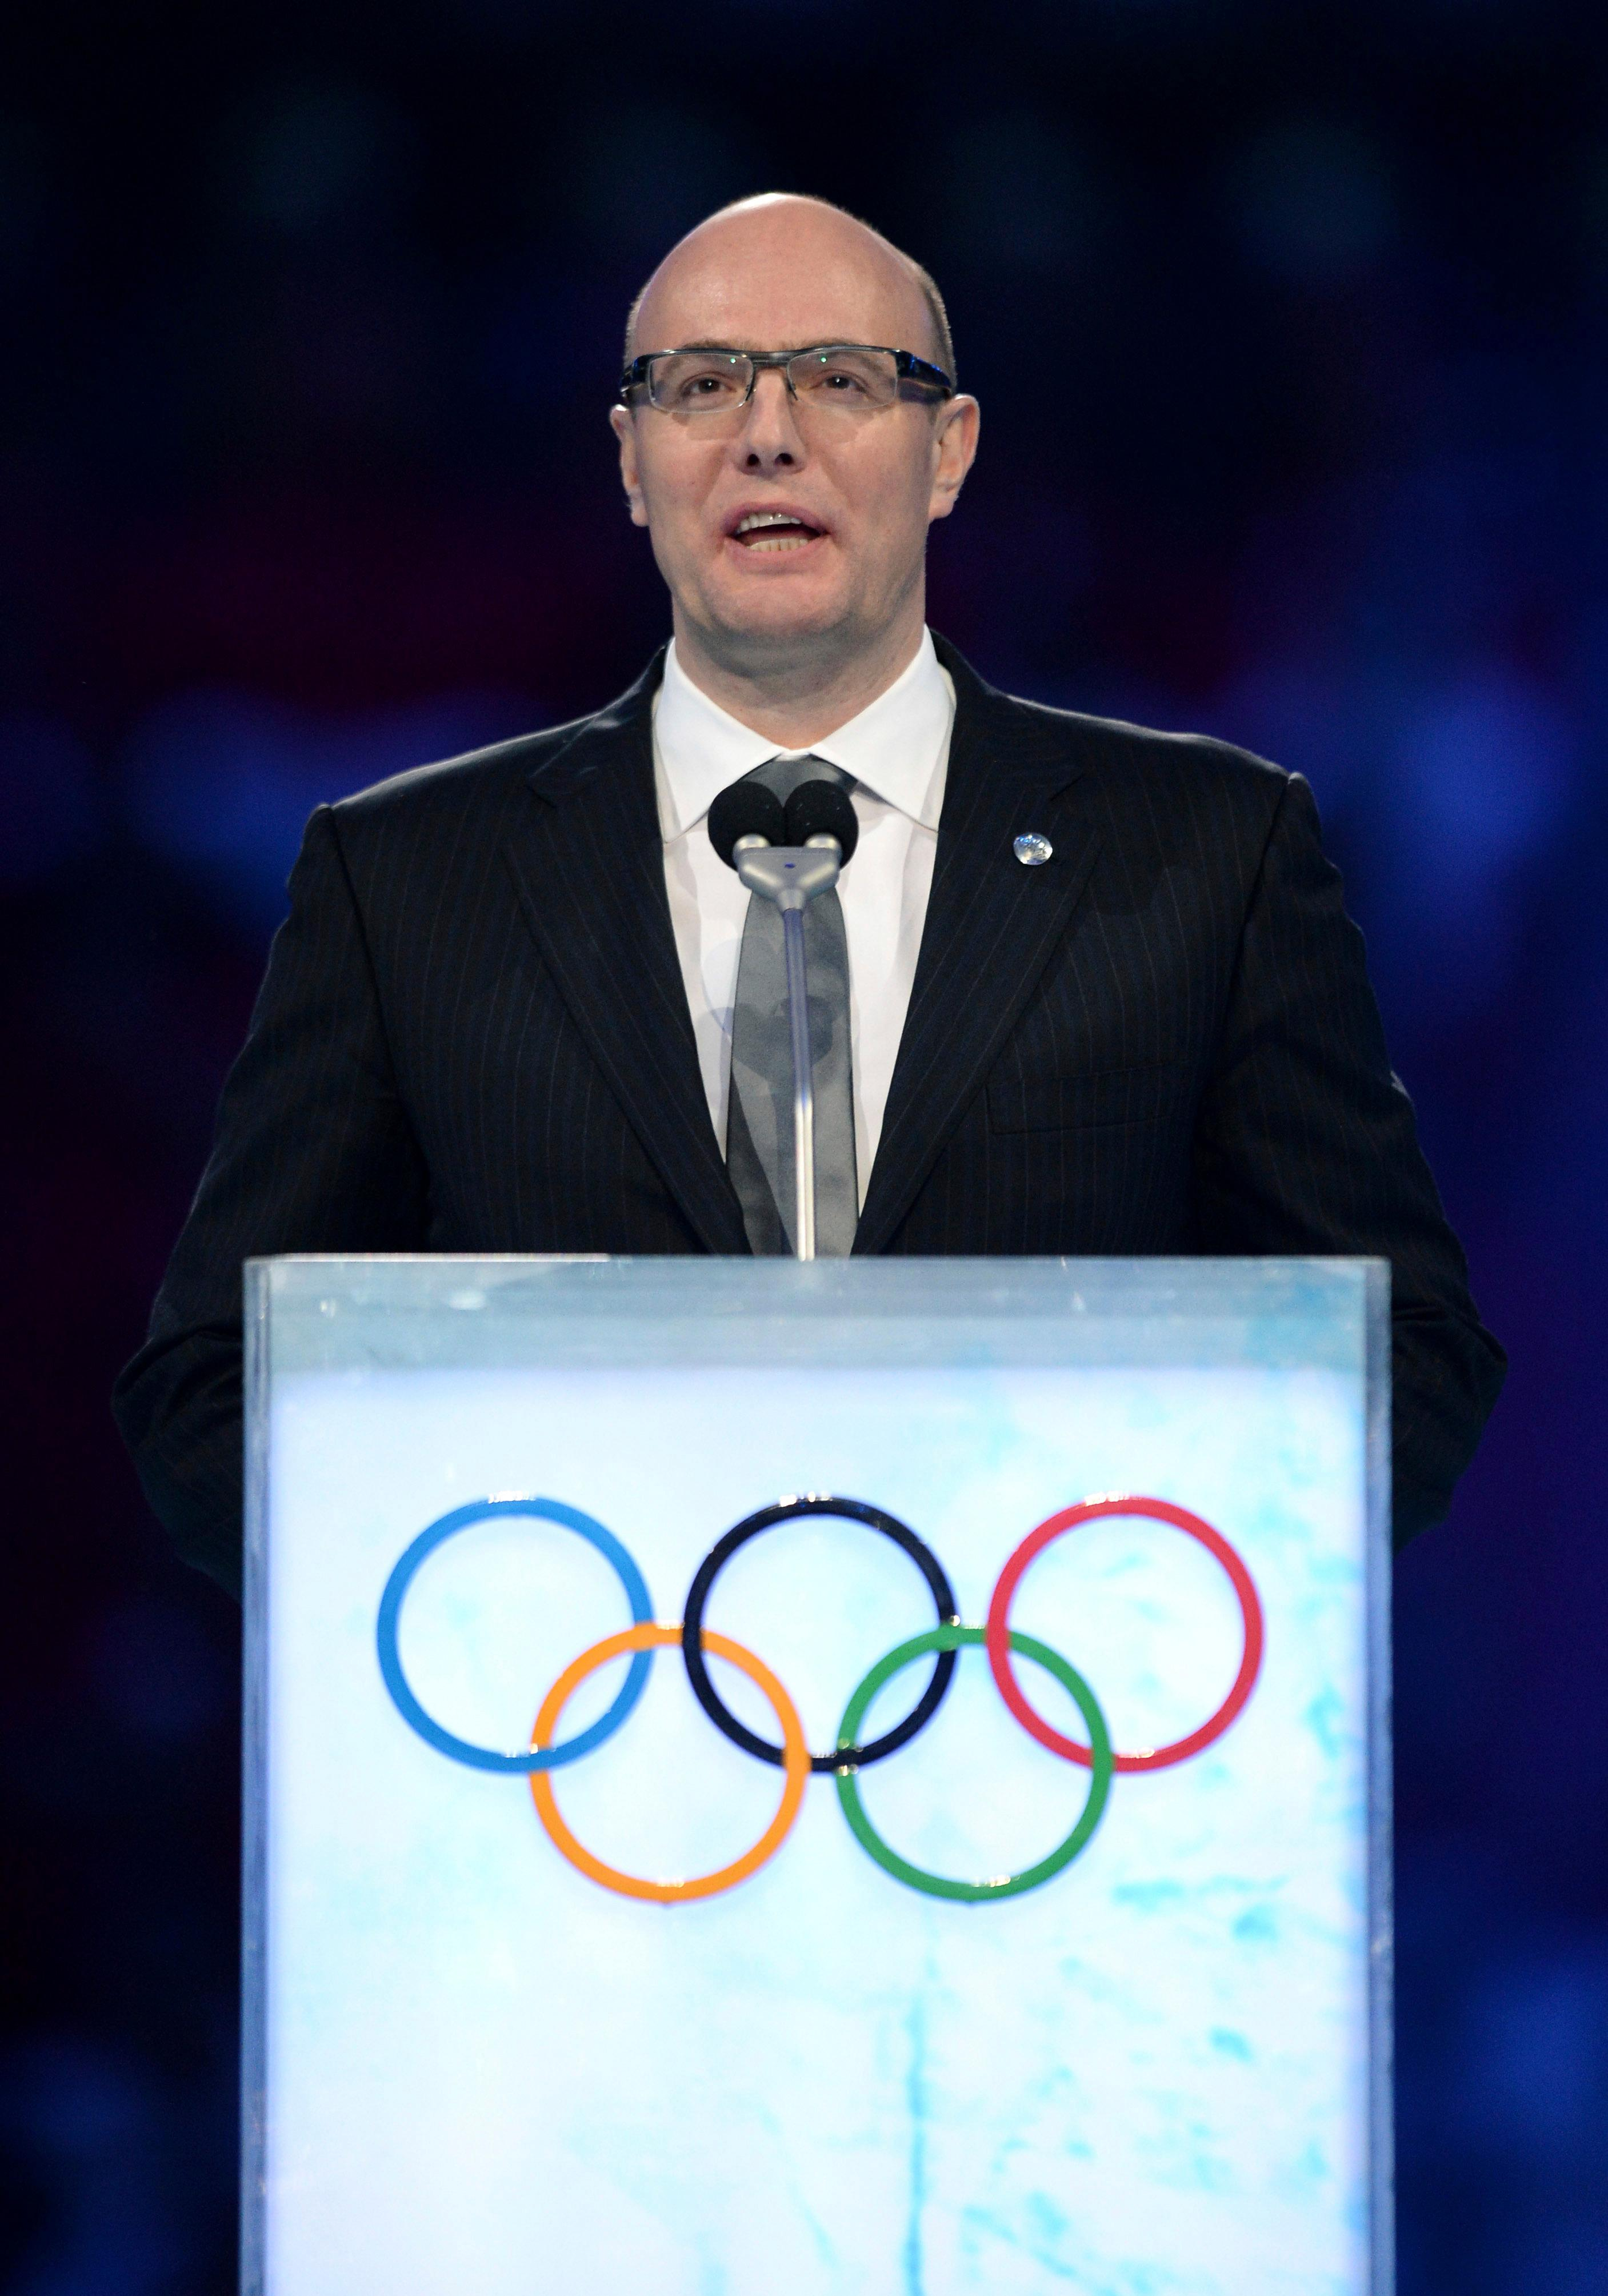 FILE - In this Friday, Feb. 7, 2014 file photo President and CEO of the Sochi 2014 organizing committee Dmitry Chernyshenko speaks during the opening ceremony of the 2014 Winter Olympics, in Sochi, Russia. (Jung Yeon-je, Pool via AP, File)